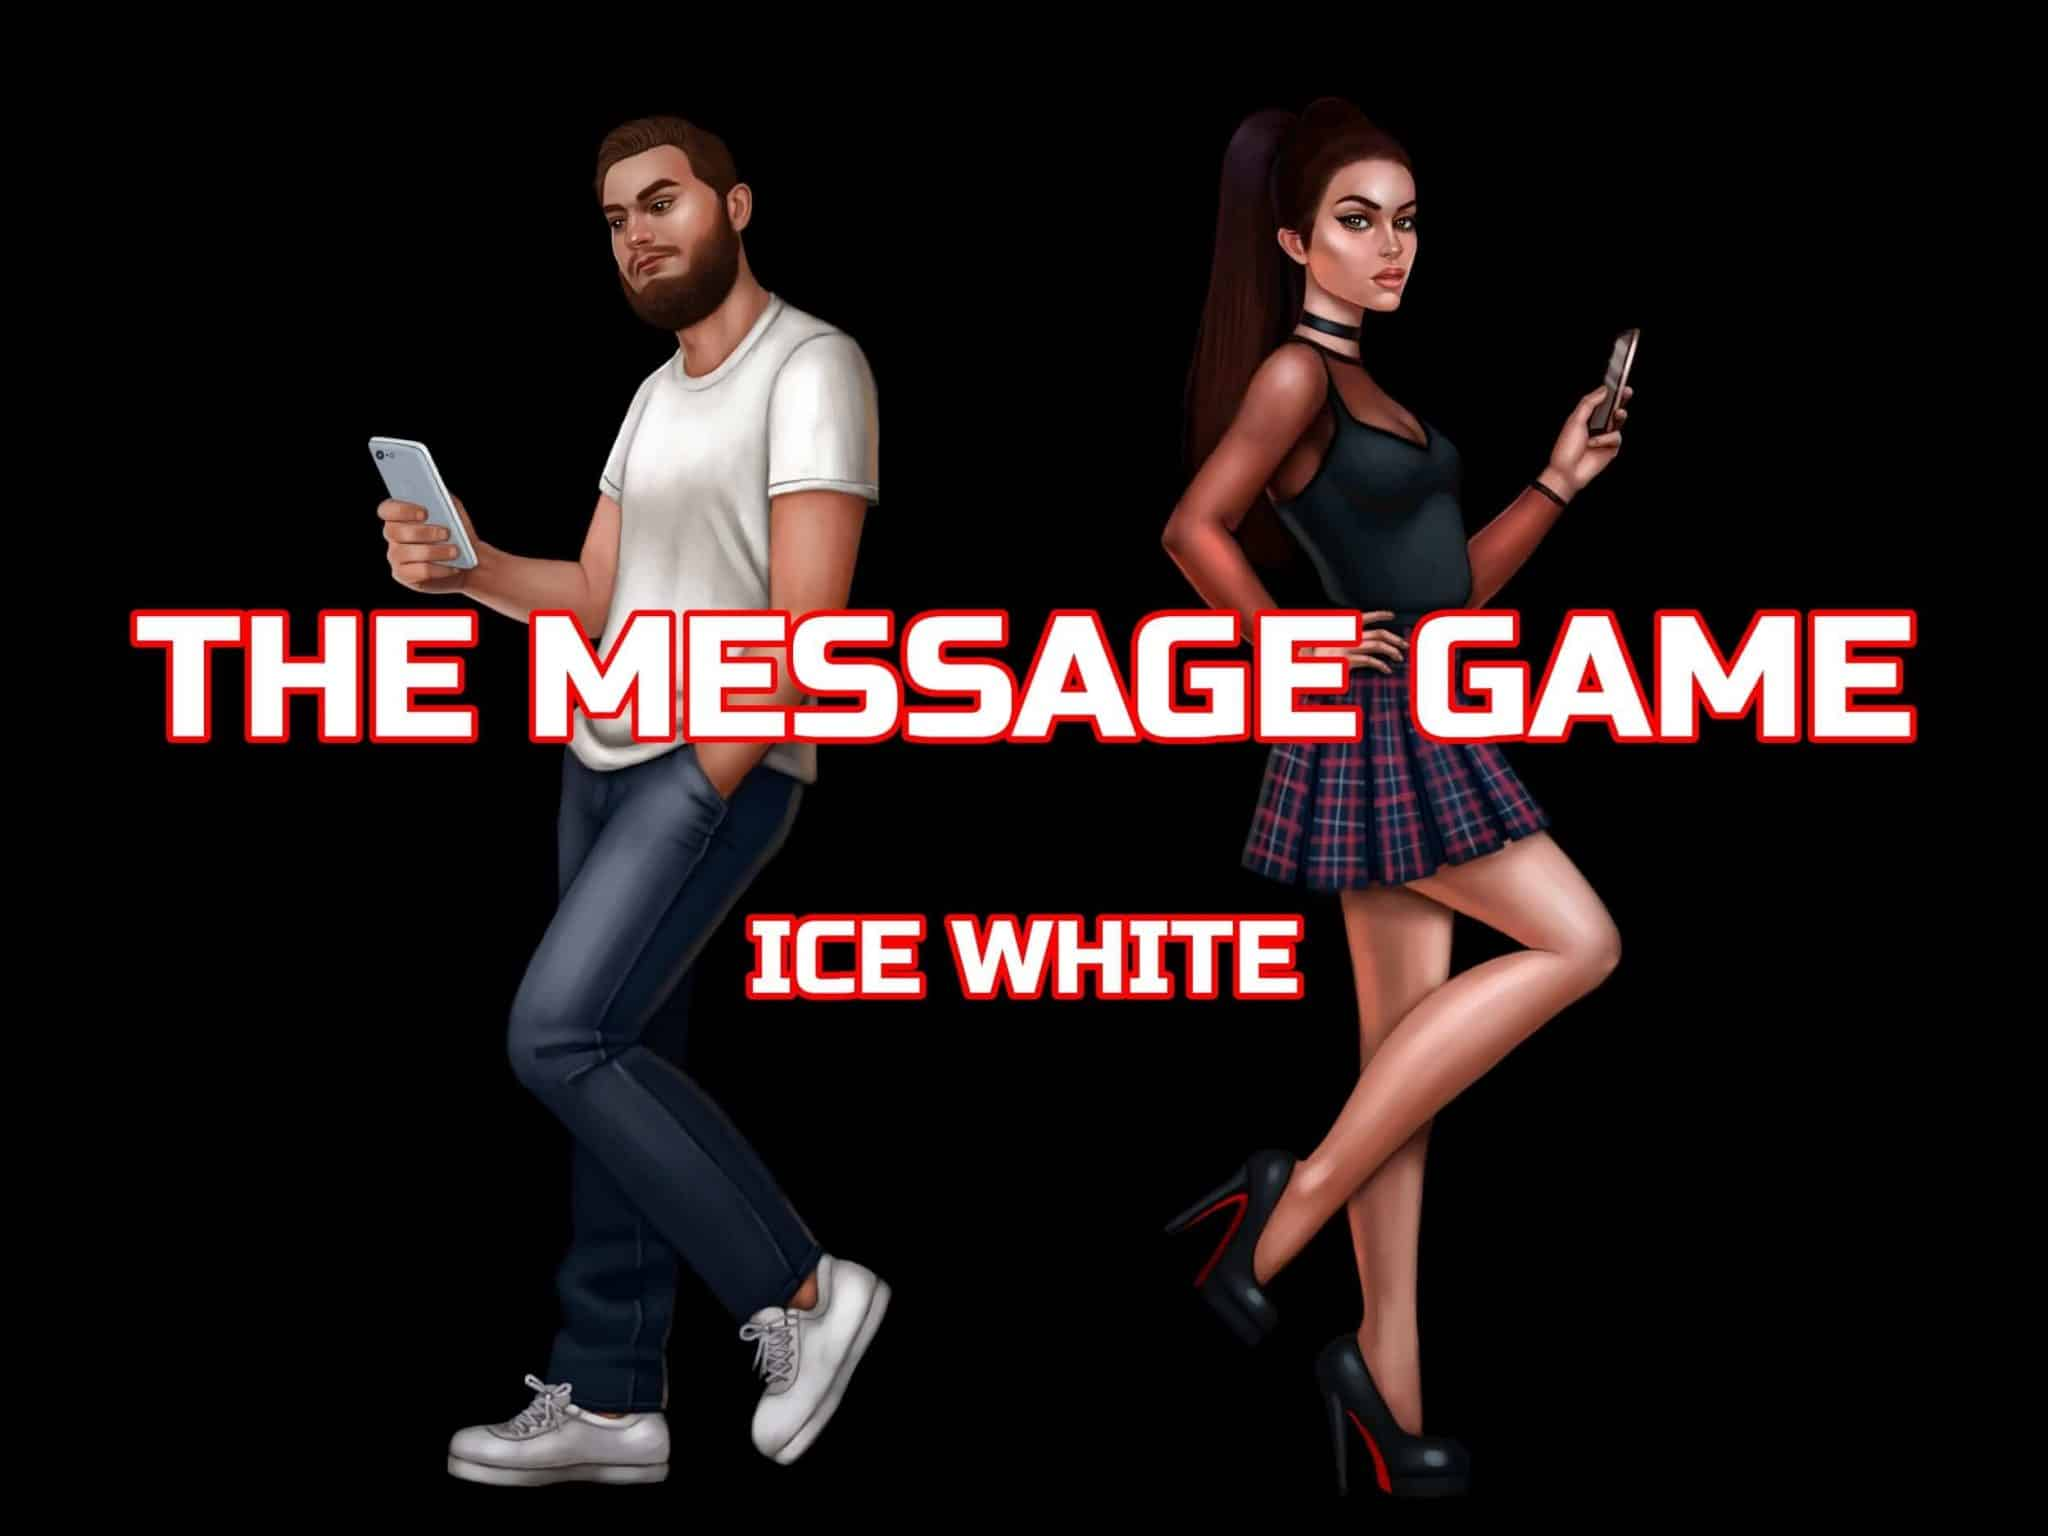 The Message Game, self-help online dating Tinder guide for men, book by Ice White